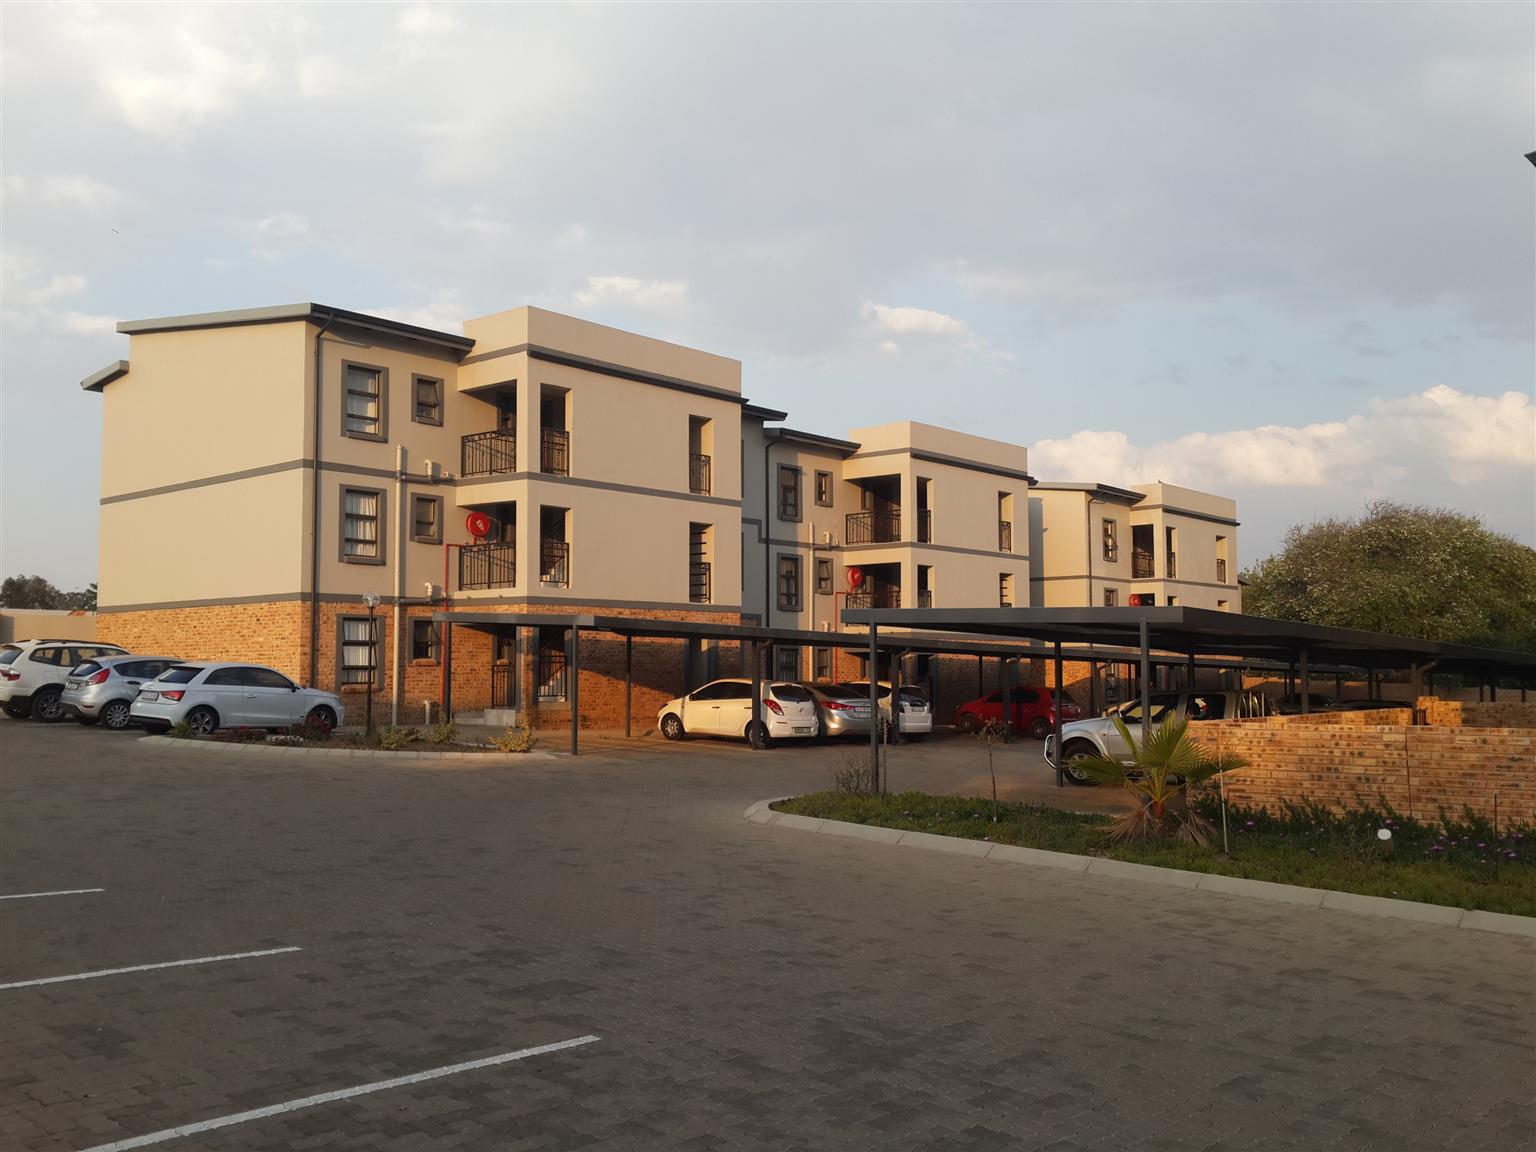 NEW APARTMENTS 2 bedrooms and 2 bathrooms for sale Benoni Rynfield / Fairlead